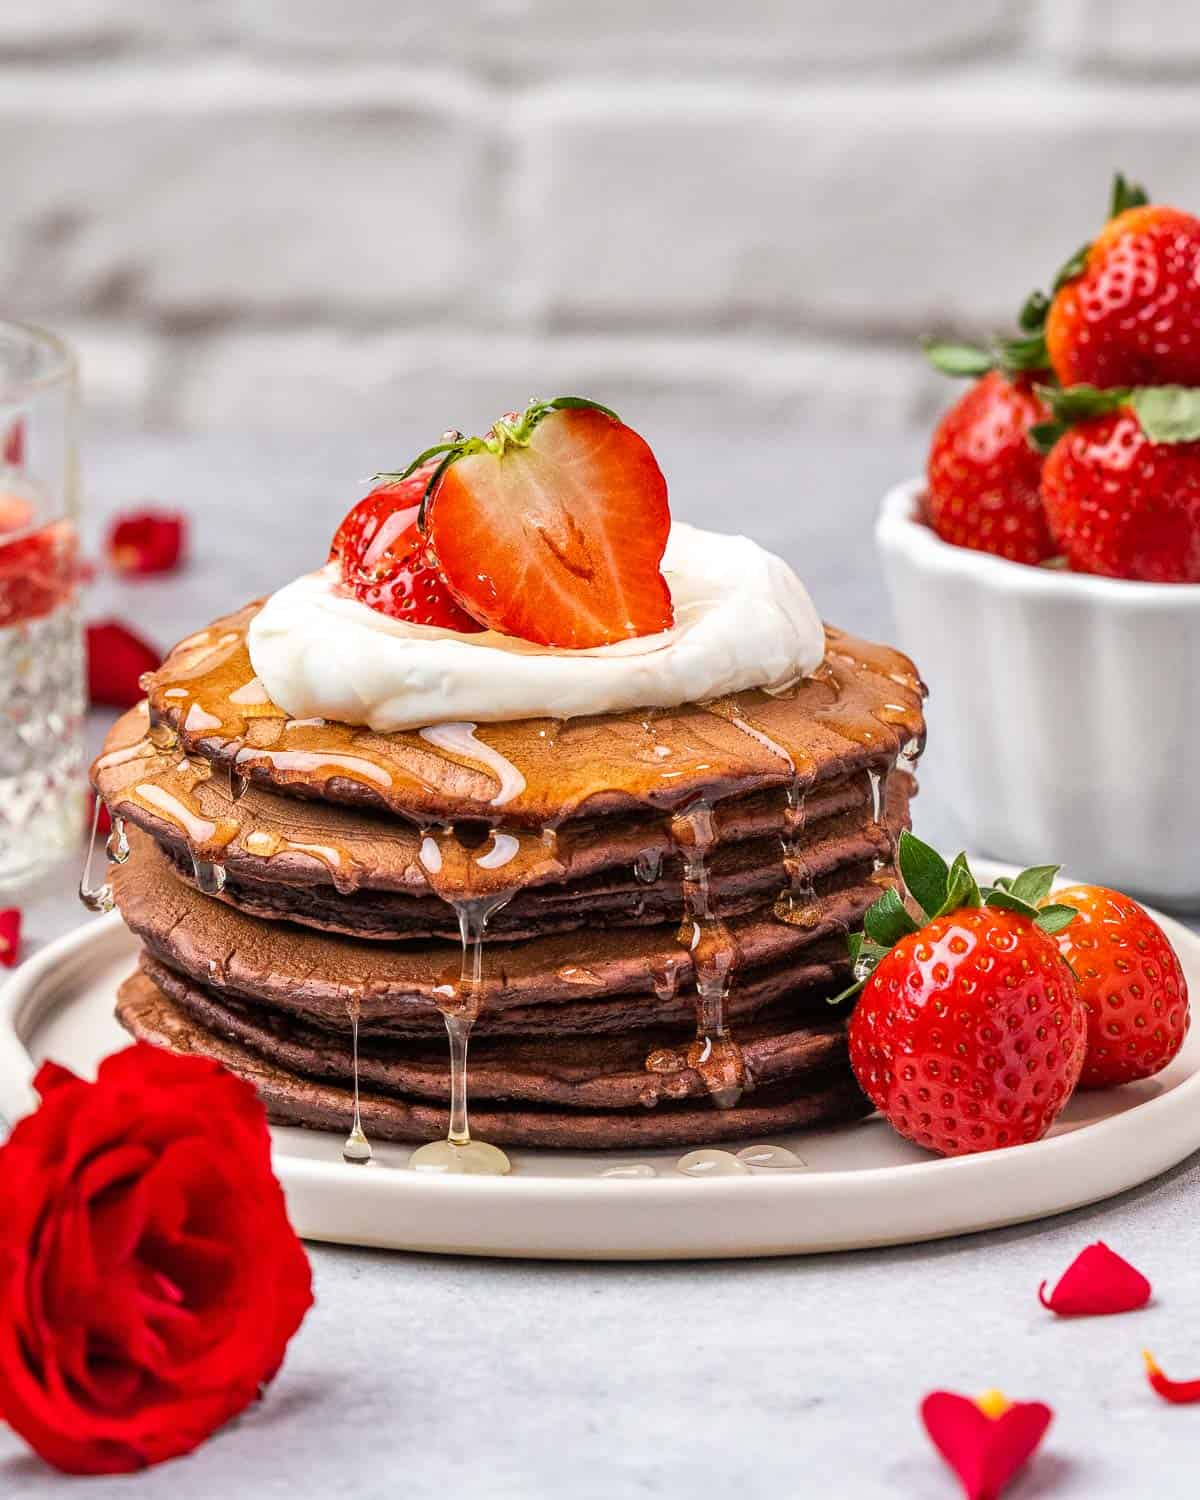 Pancakes stacked on plate dripping with syrup.